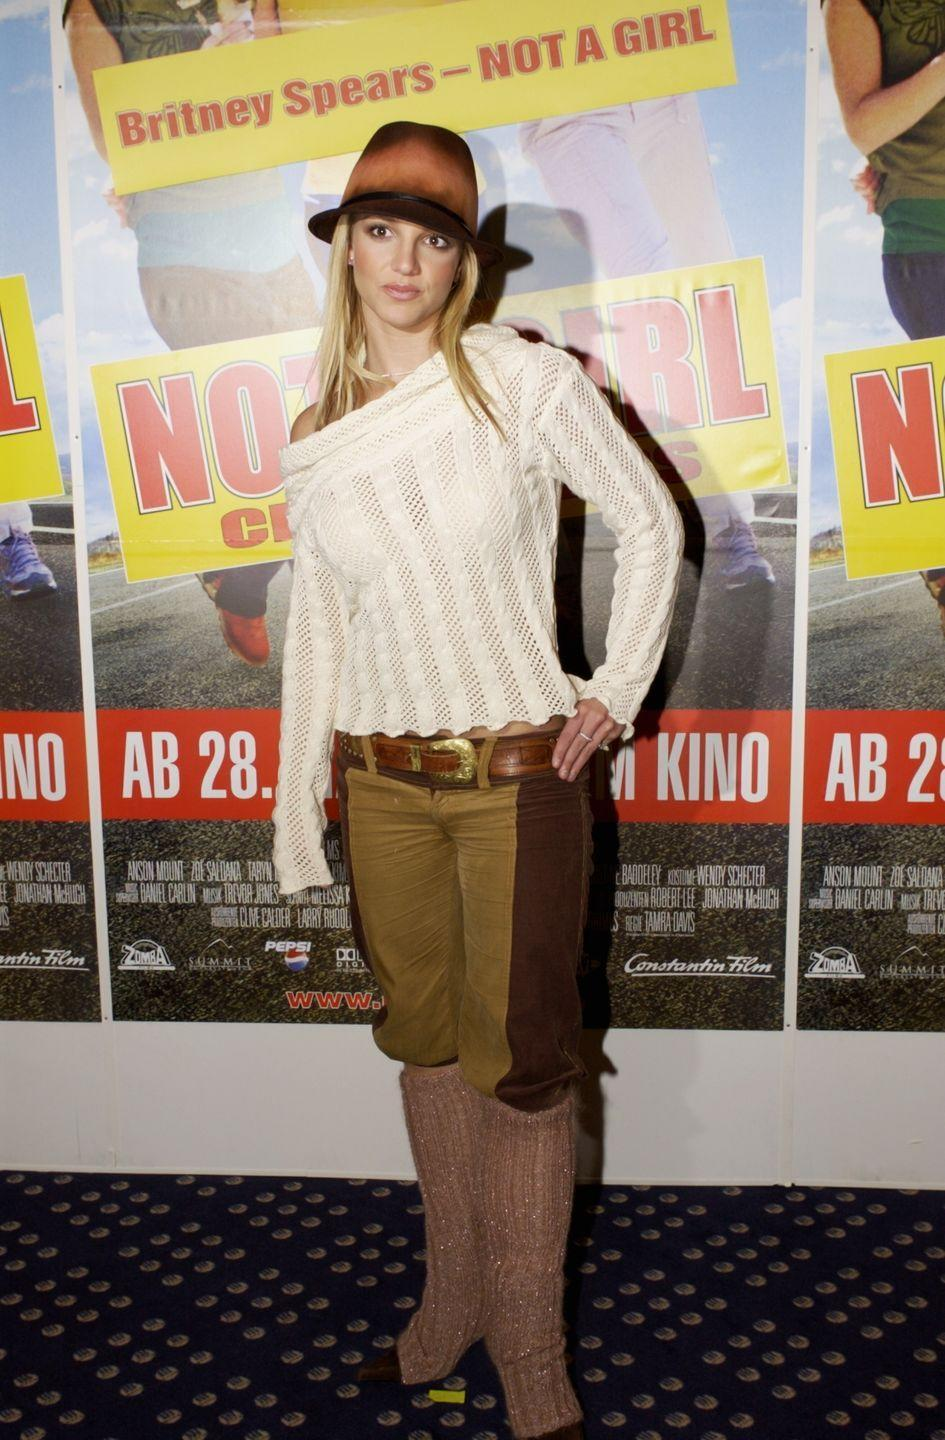 <p>Here, Britney wears a one-shoulder sweater, low-rise pants tucked into her knee-high boots, and her now-signature fedora hat.</p>